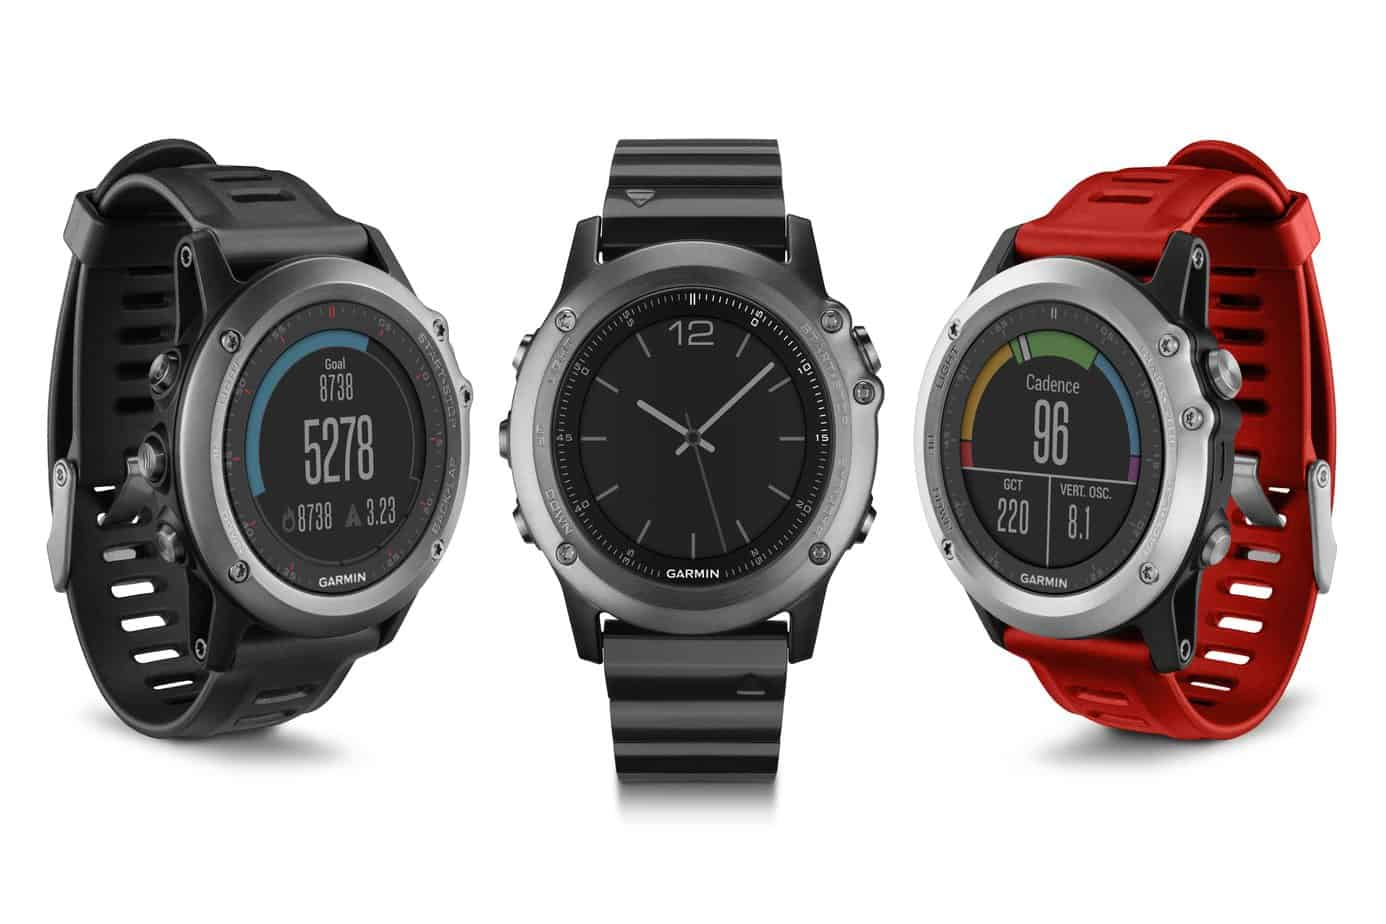 watch sapphire hr components fenix garmin bike en training gps